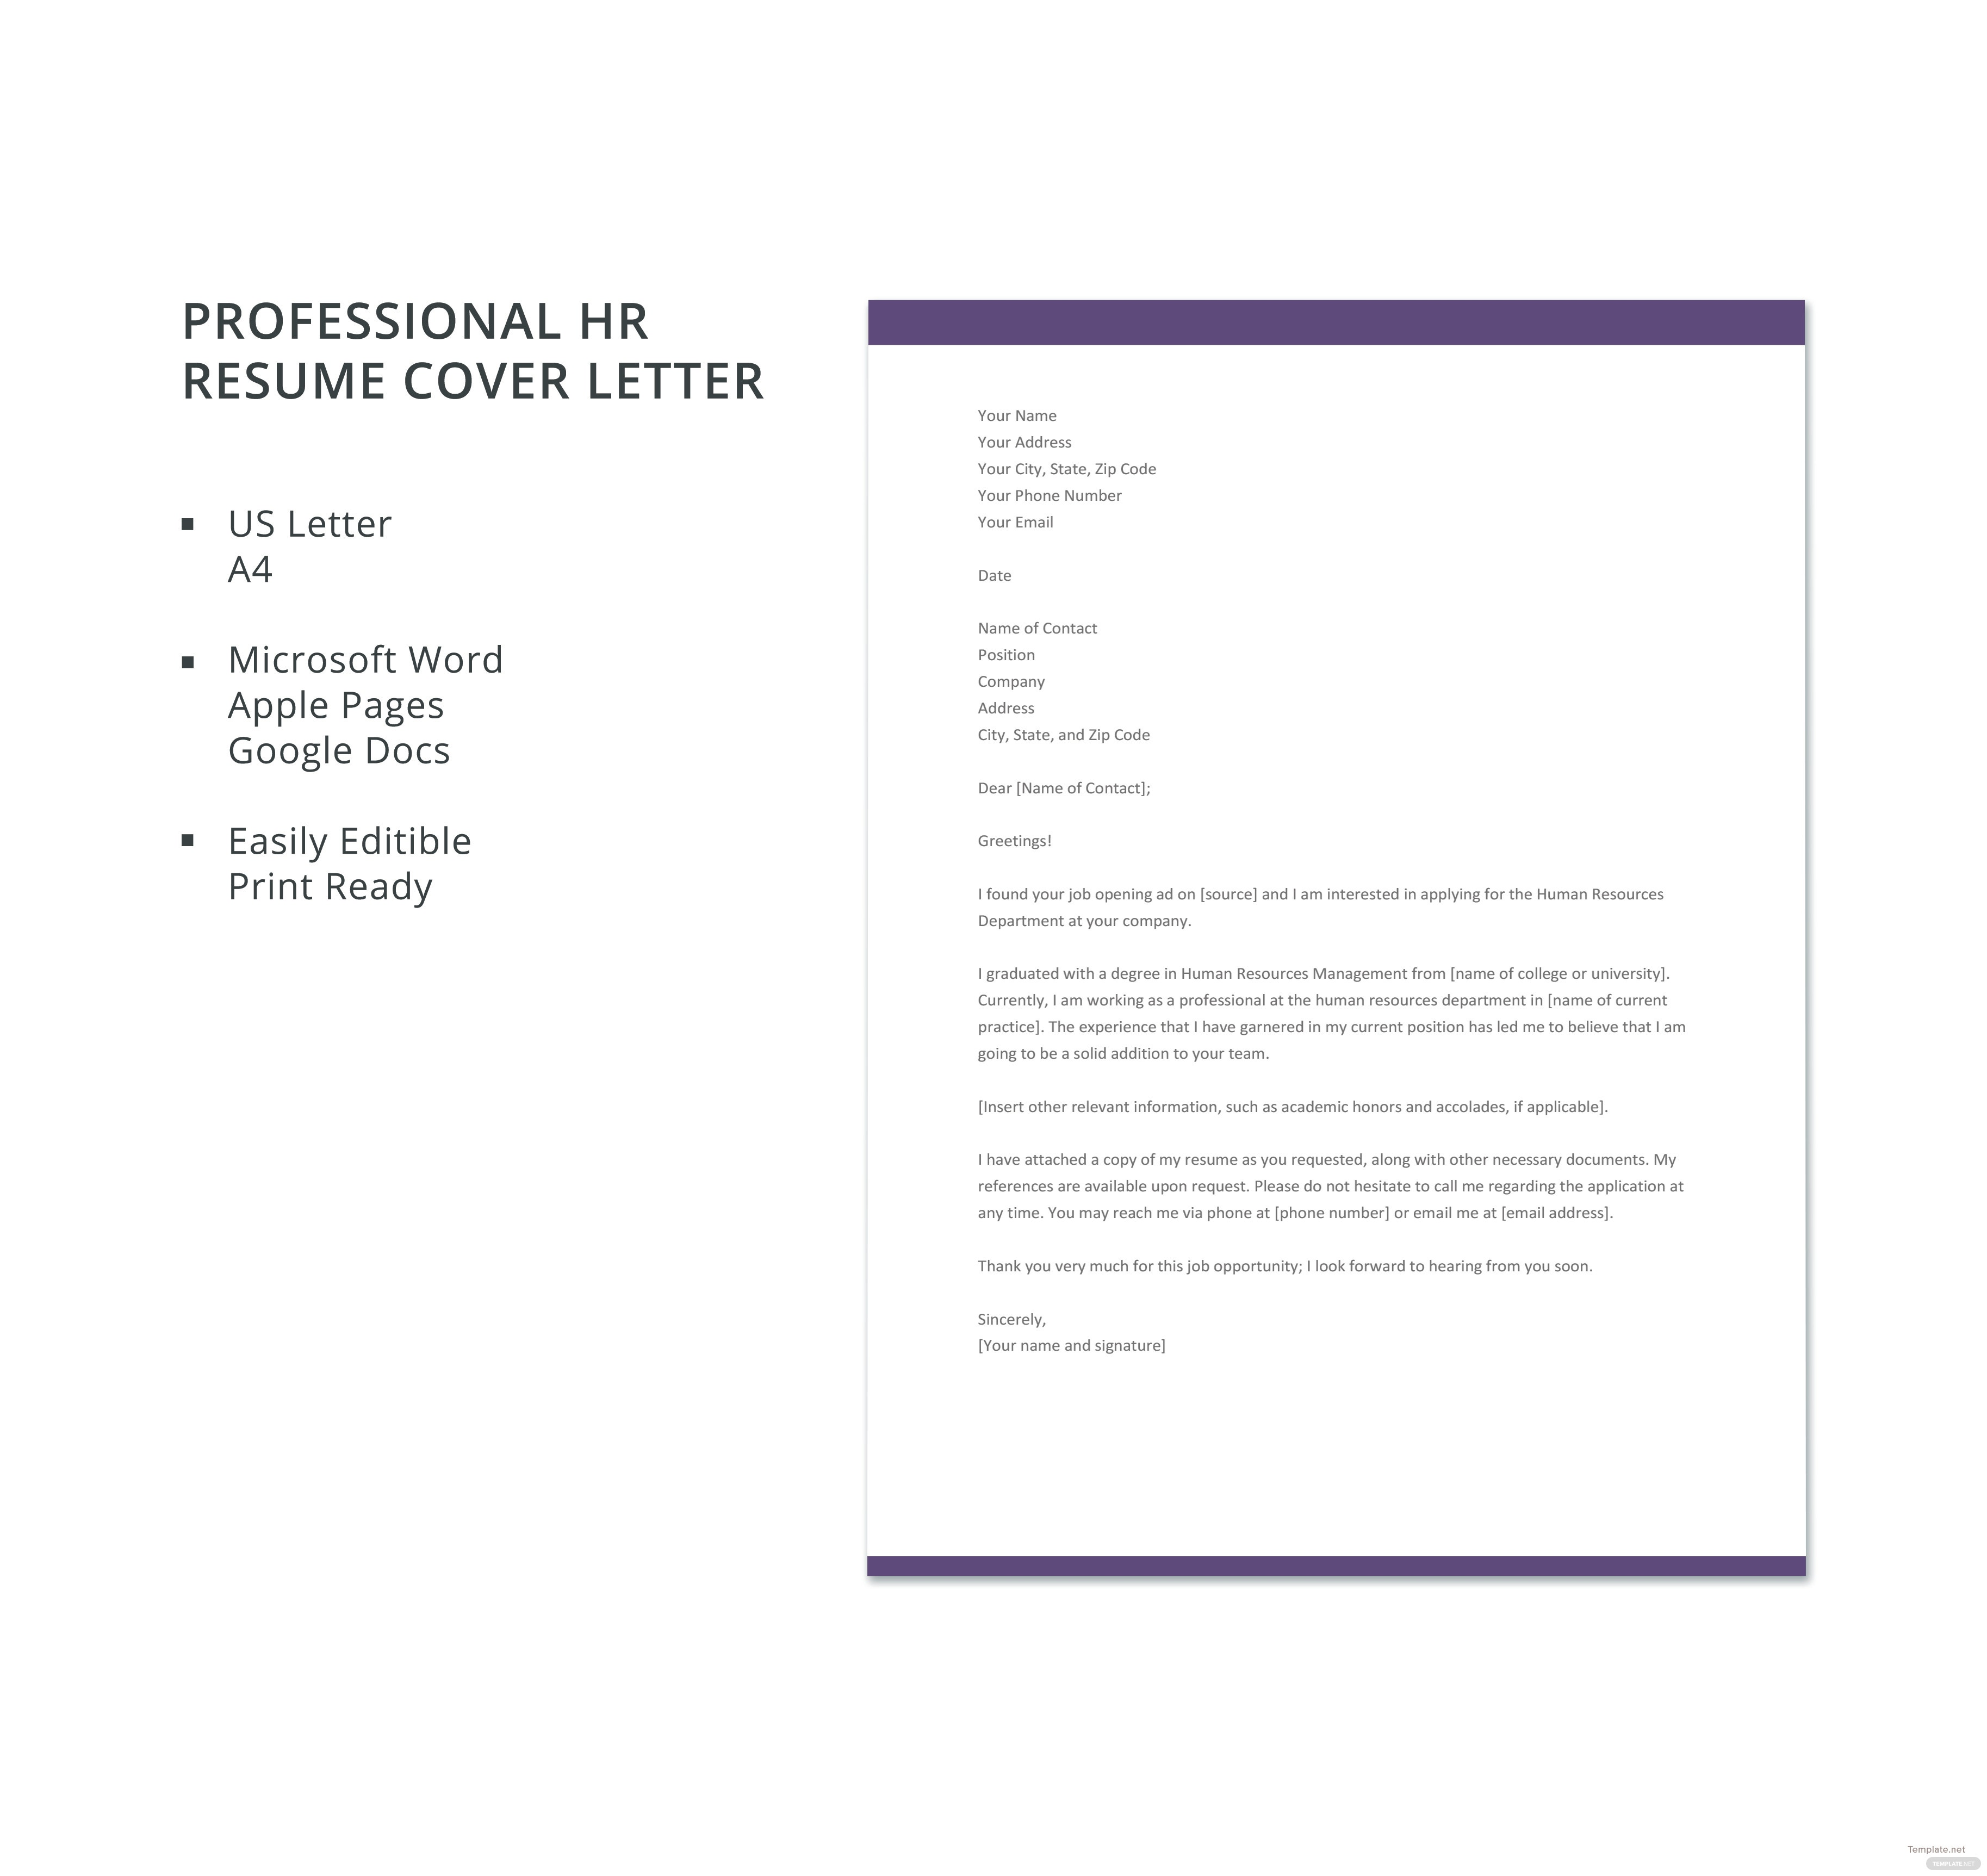 Free receptionist resume cover letter template in microsoft word click to see full template receptionist resume cover letter template free download madrichimfo Image collections